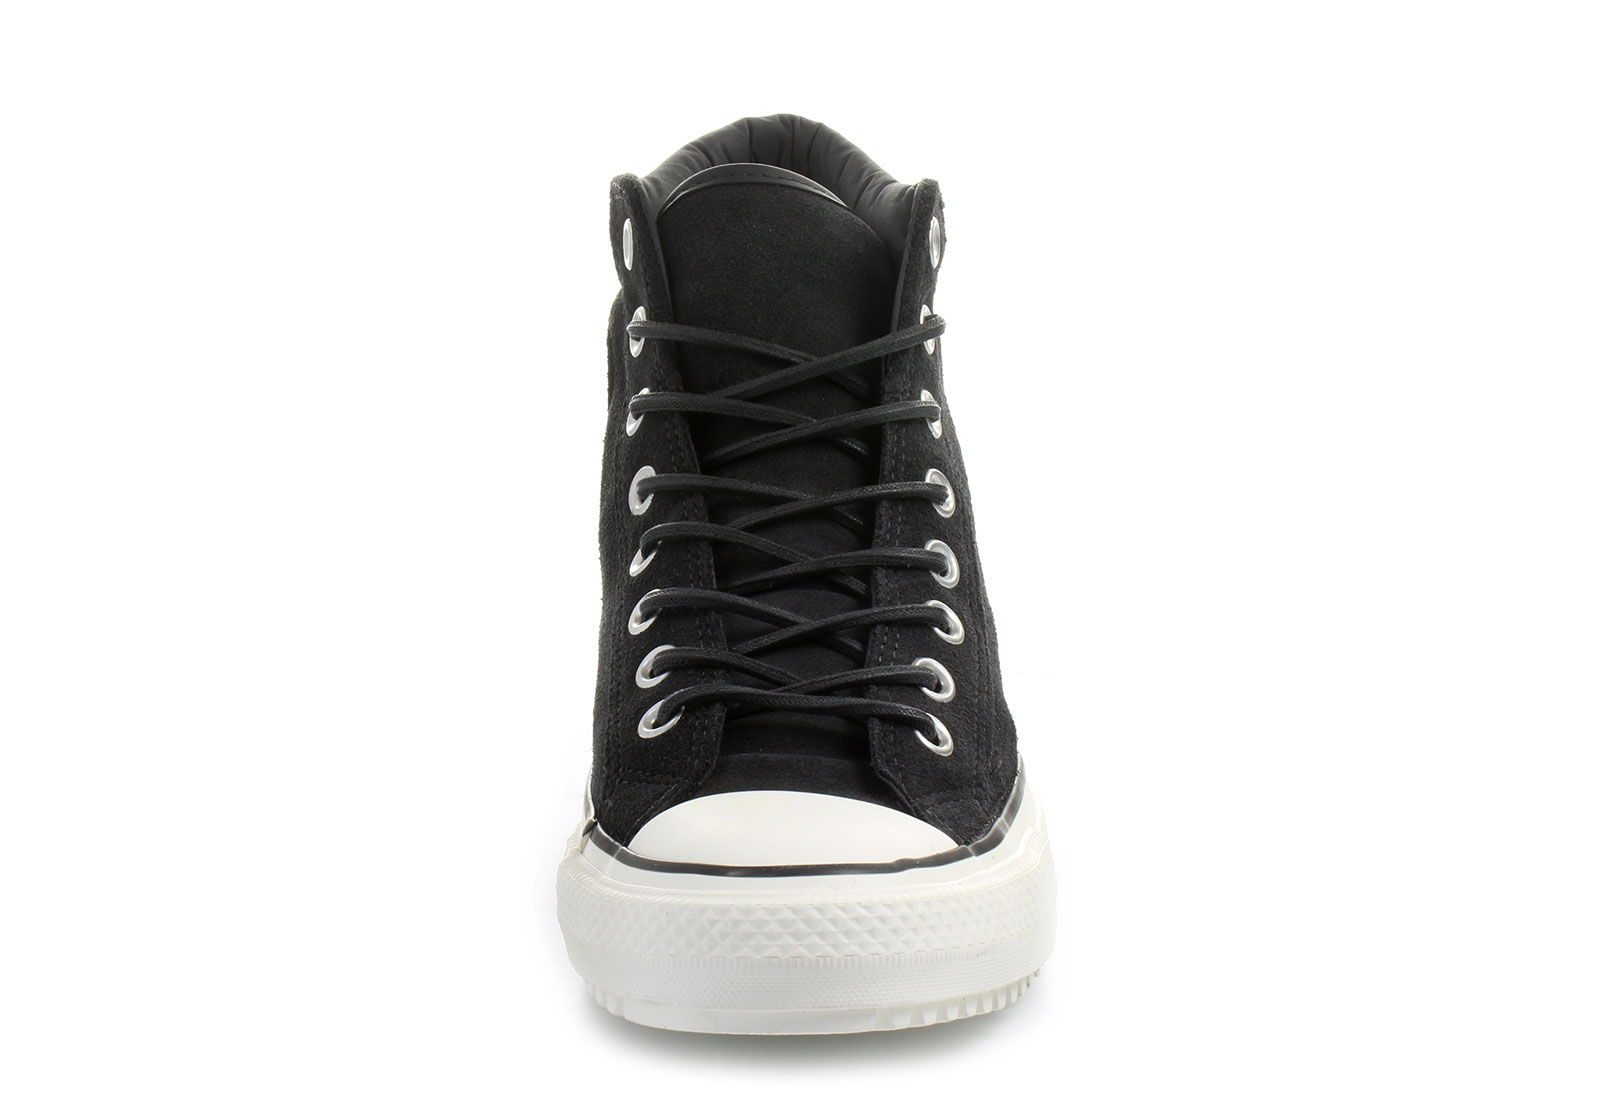 0d7f14729902 Converse Sneakers - Chuck Taylor All Star Converse Boot Pc - 153675C ...